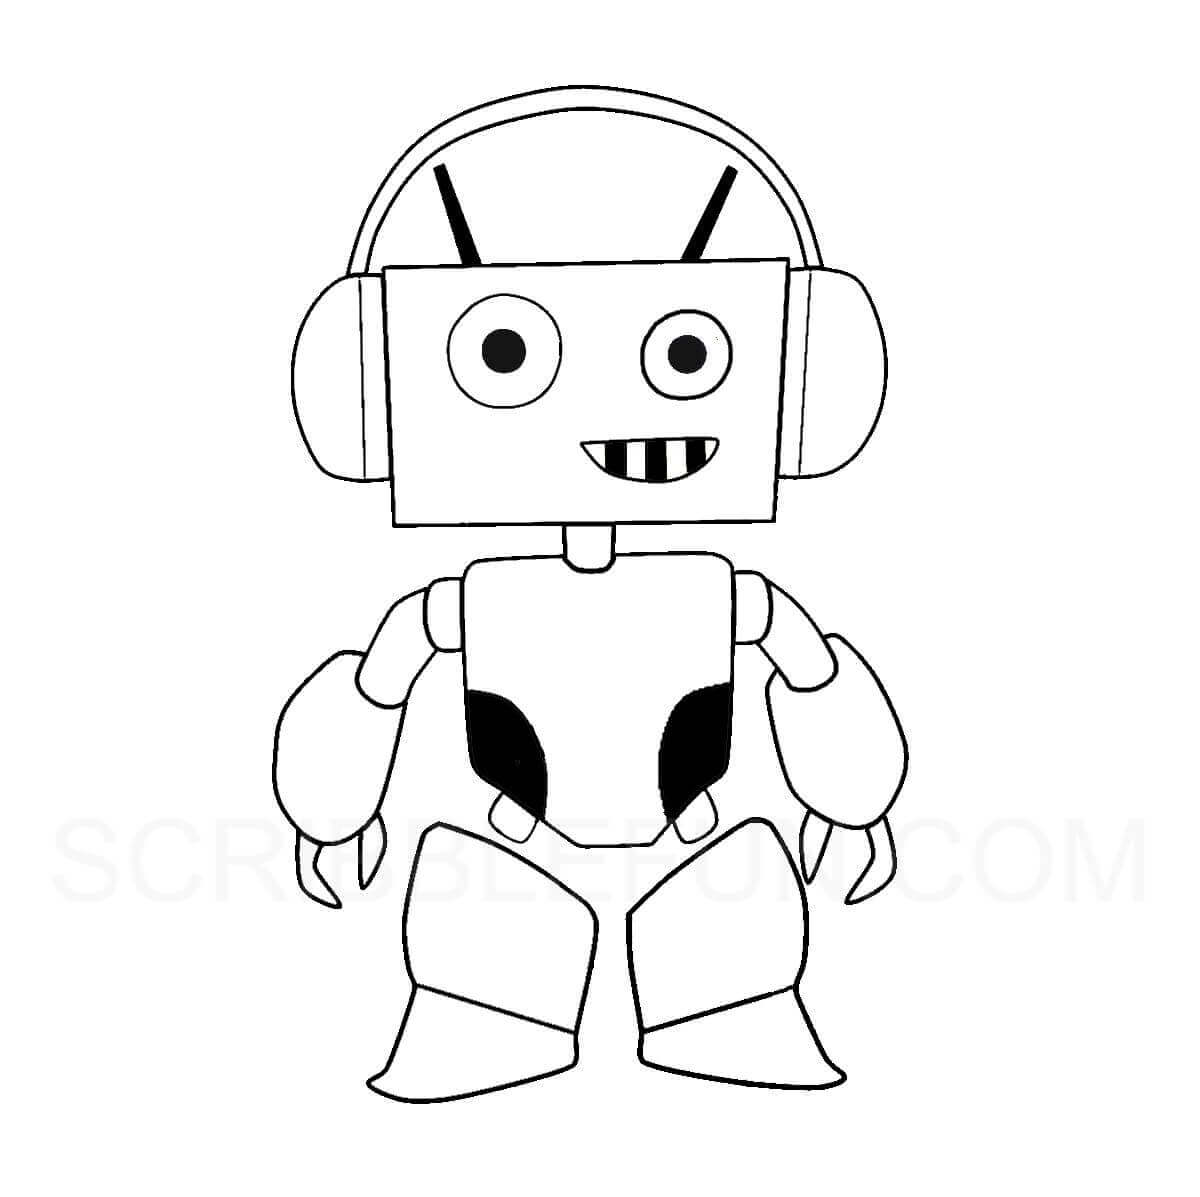 Bots coloring picture